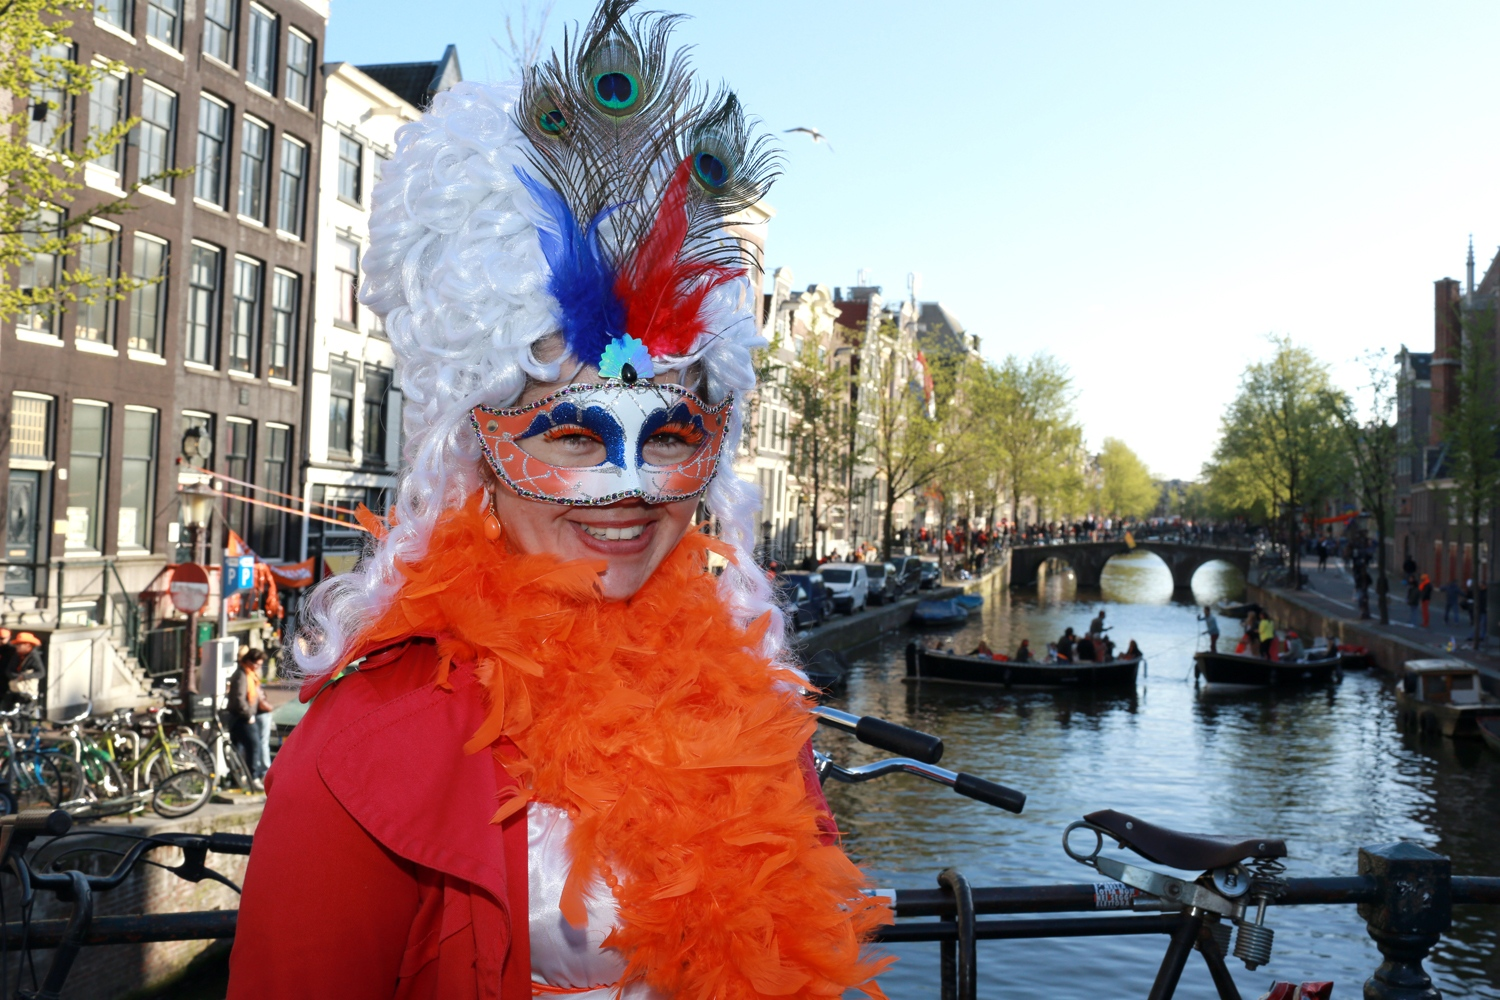 A unidentified reveler celebrates Koningsdag or King's Day on a bridge in Amsterdam.